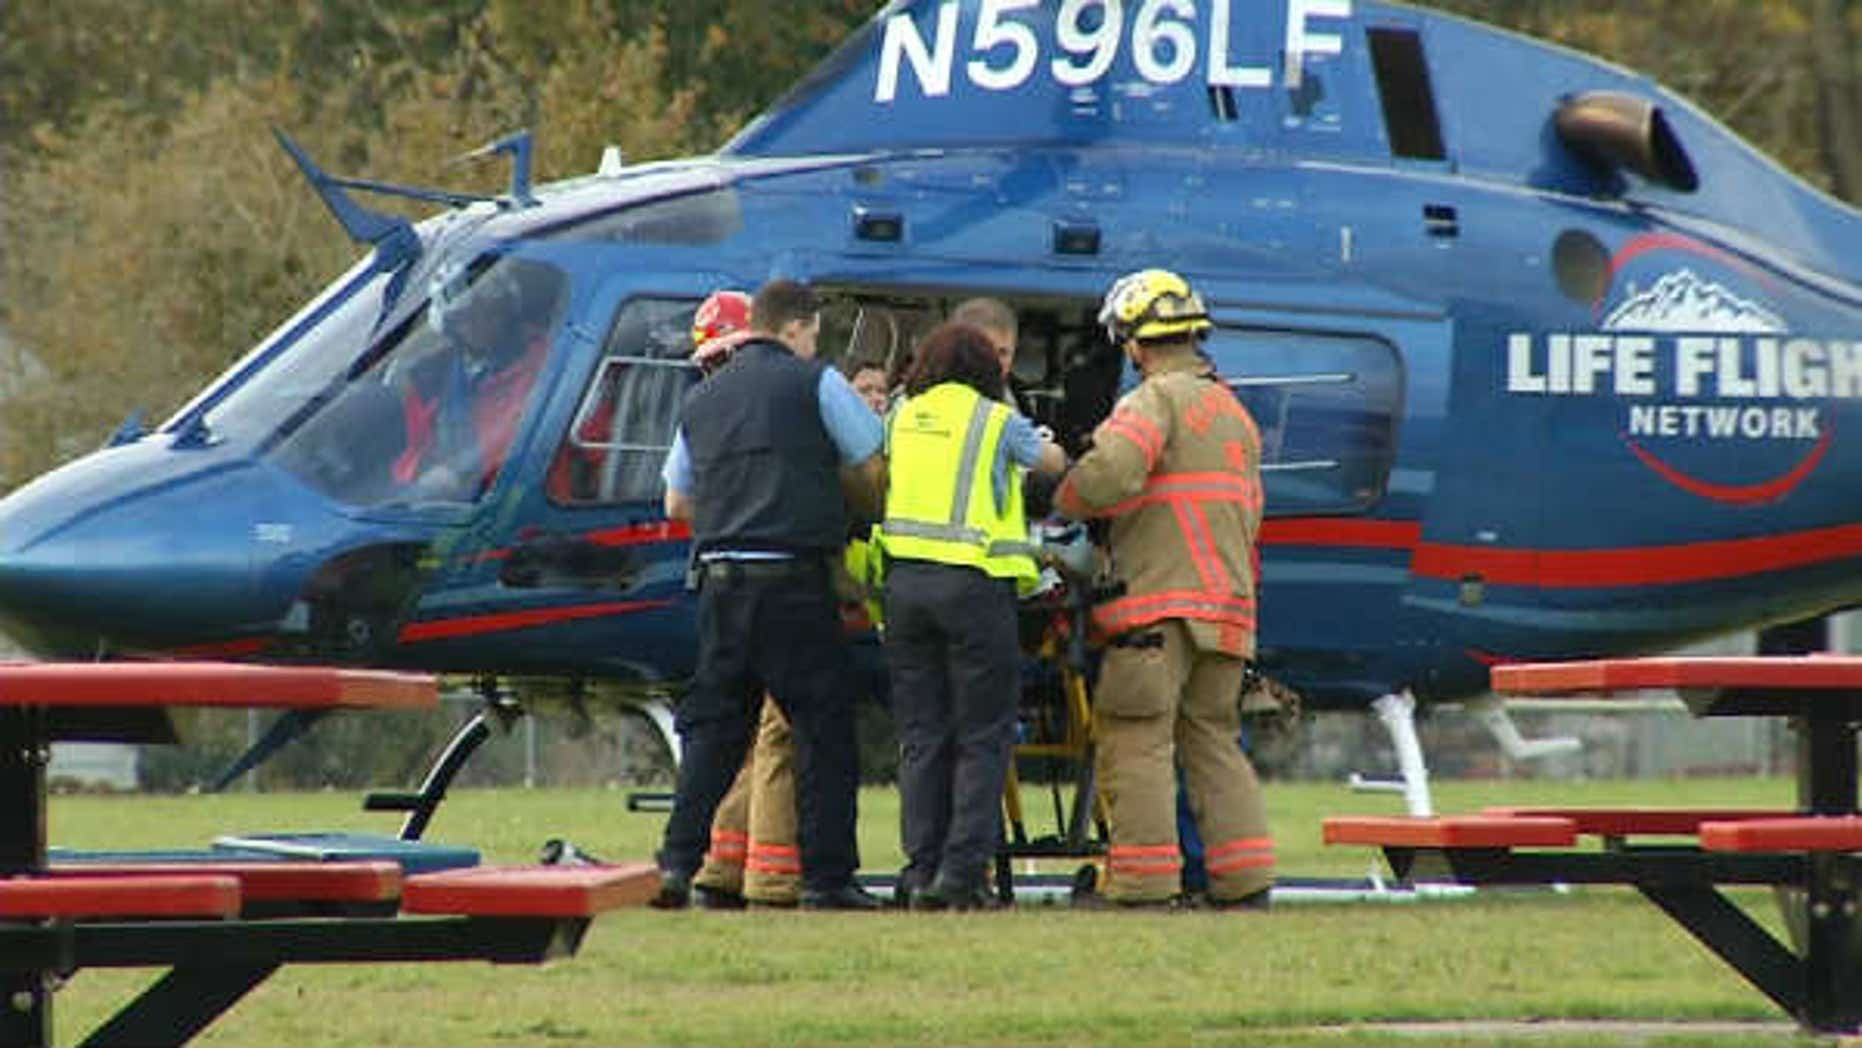 November 3, 2013: A police officer is loaded onto a helicopter after being shot responding to a fire in Oregon City, Ore. (Courtesy KPTV)